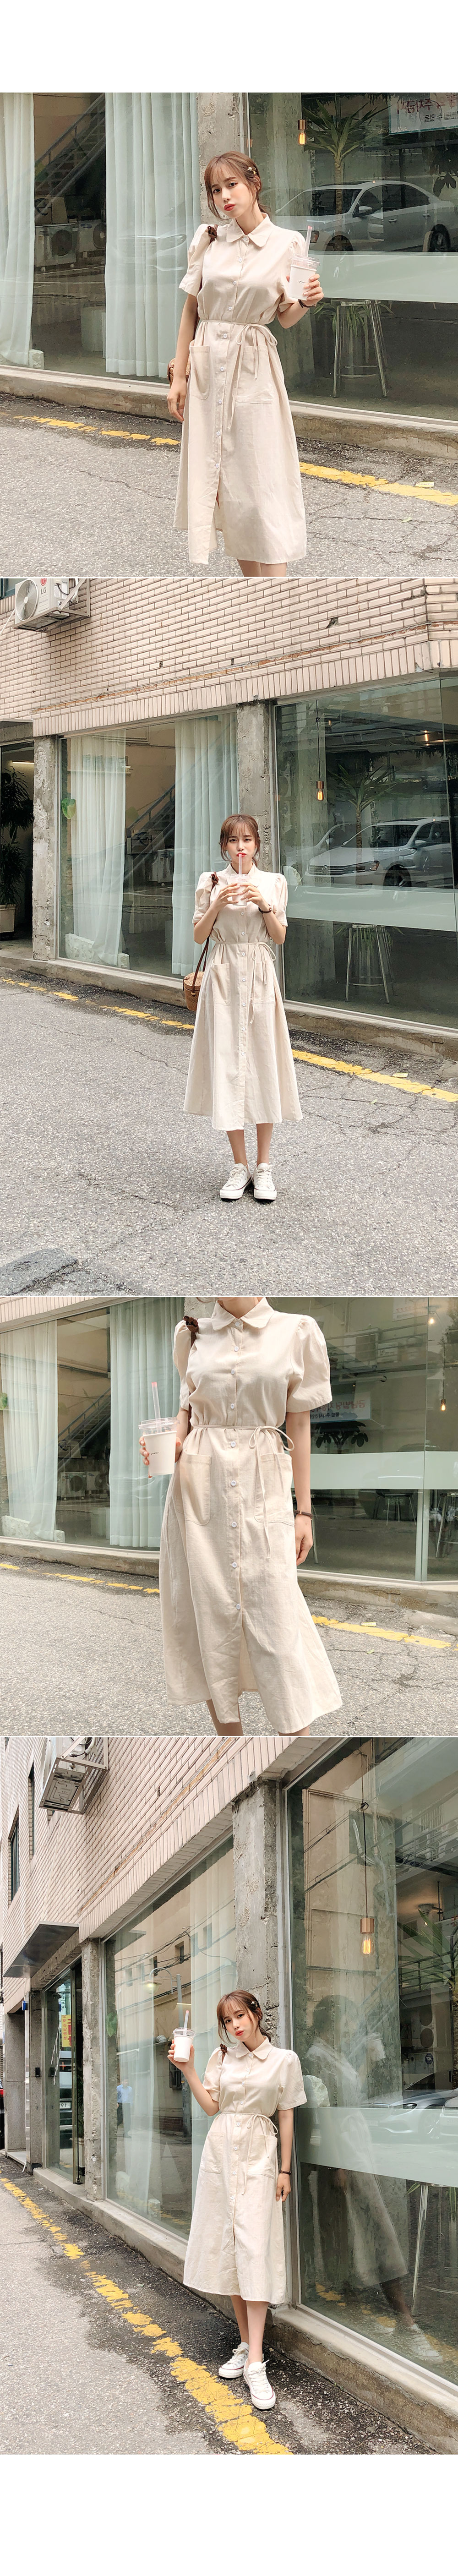 Daily Dress of the Day